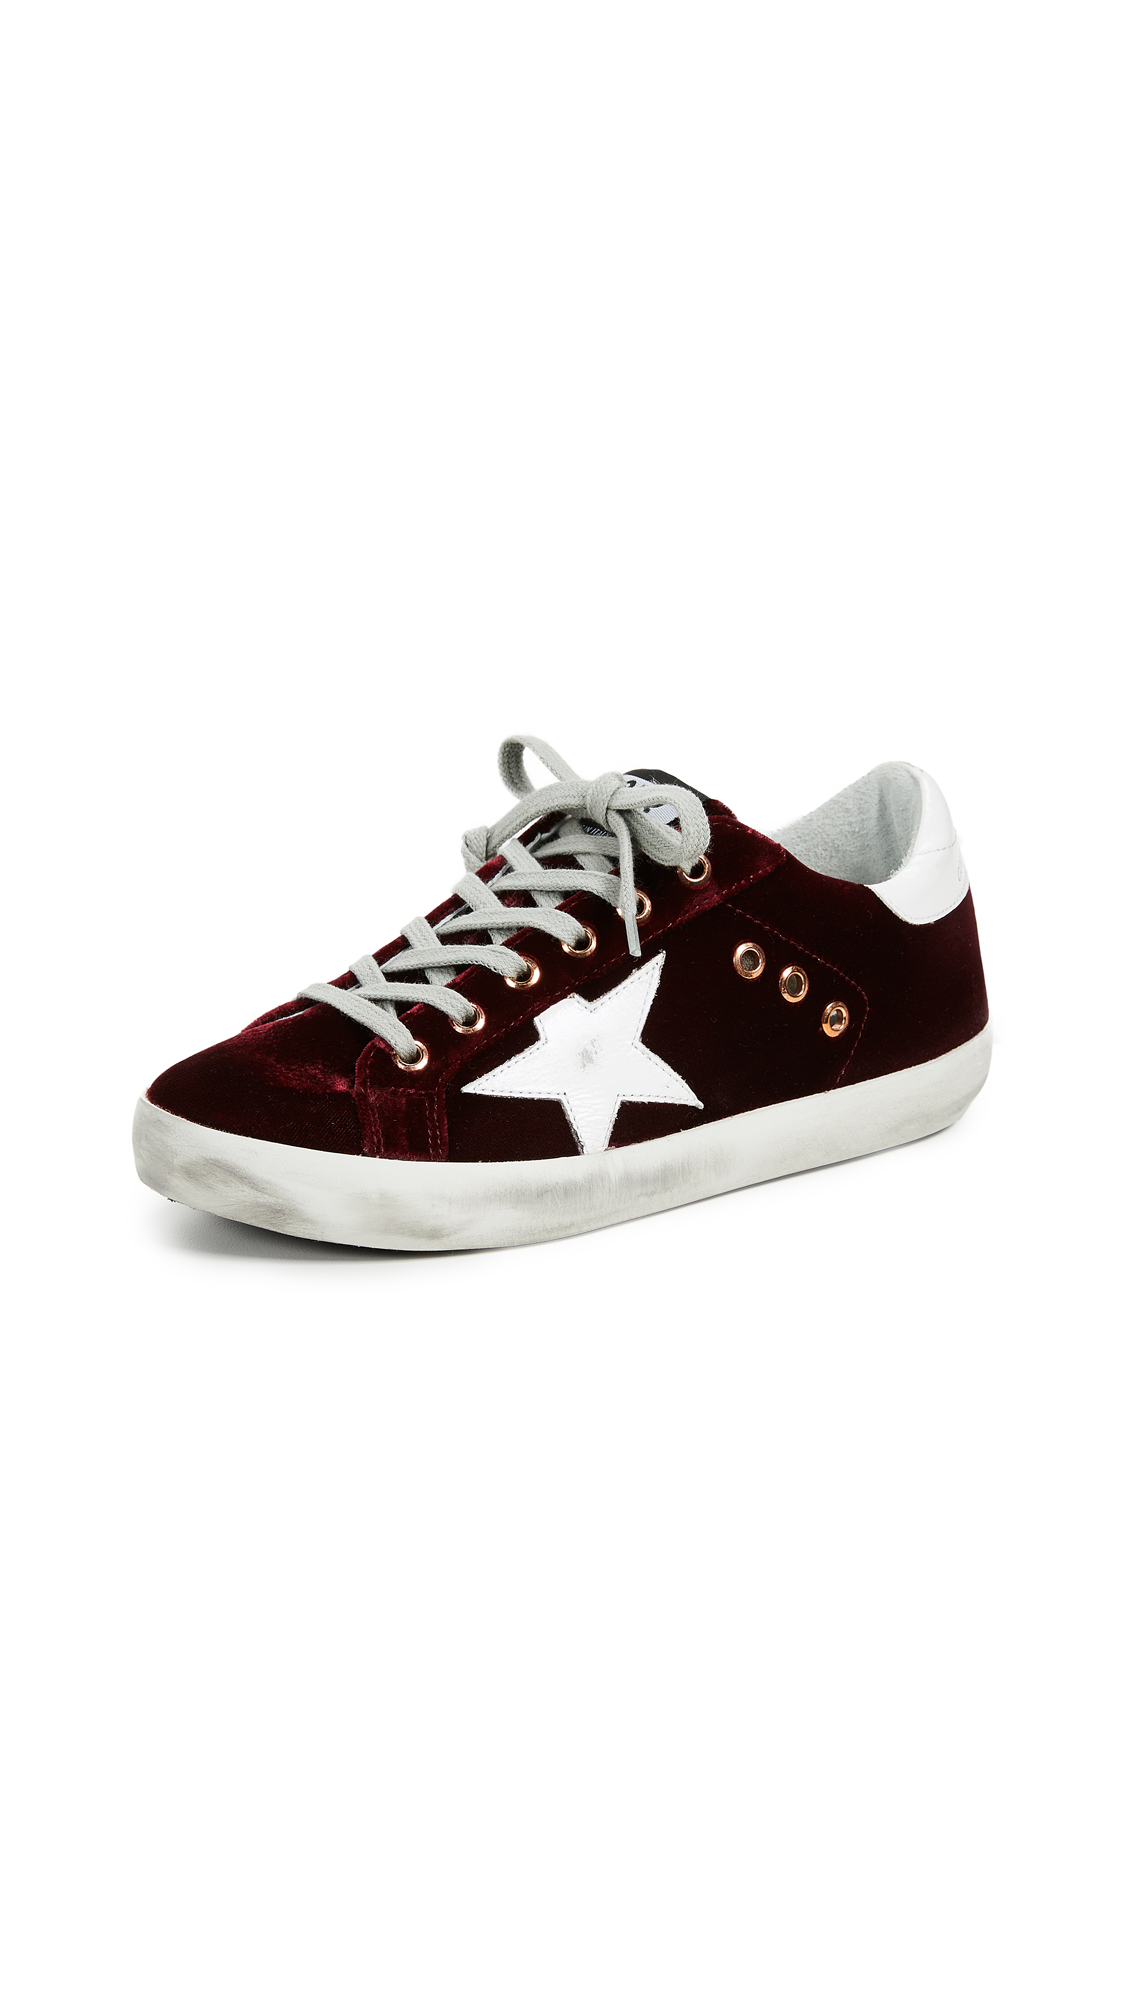 Golden Goose Superstar Sneakers In Bordeaux/White